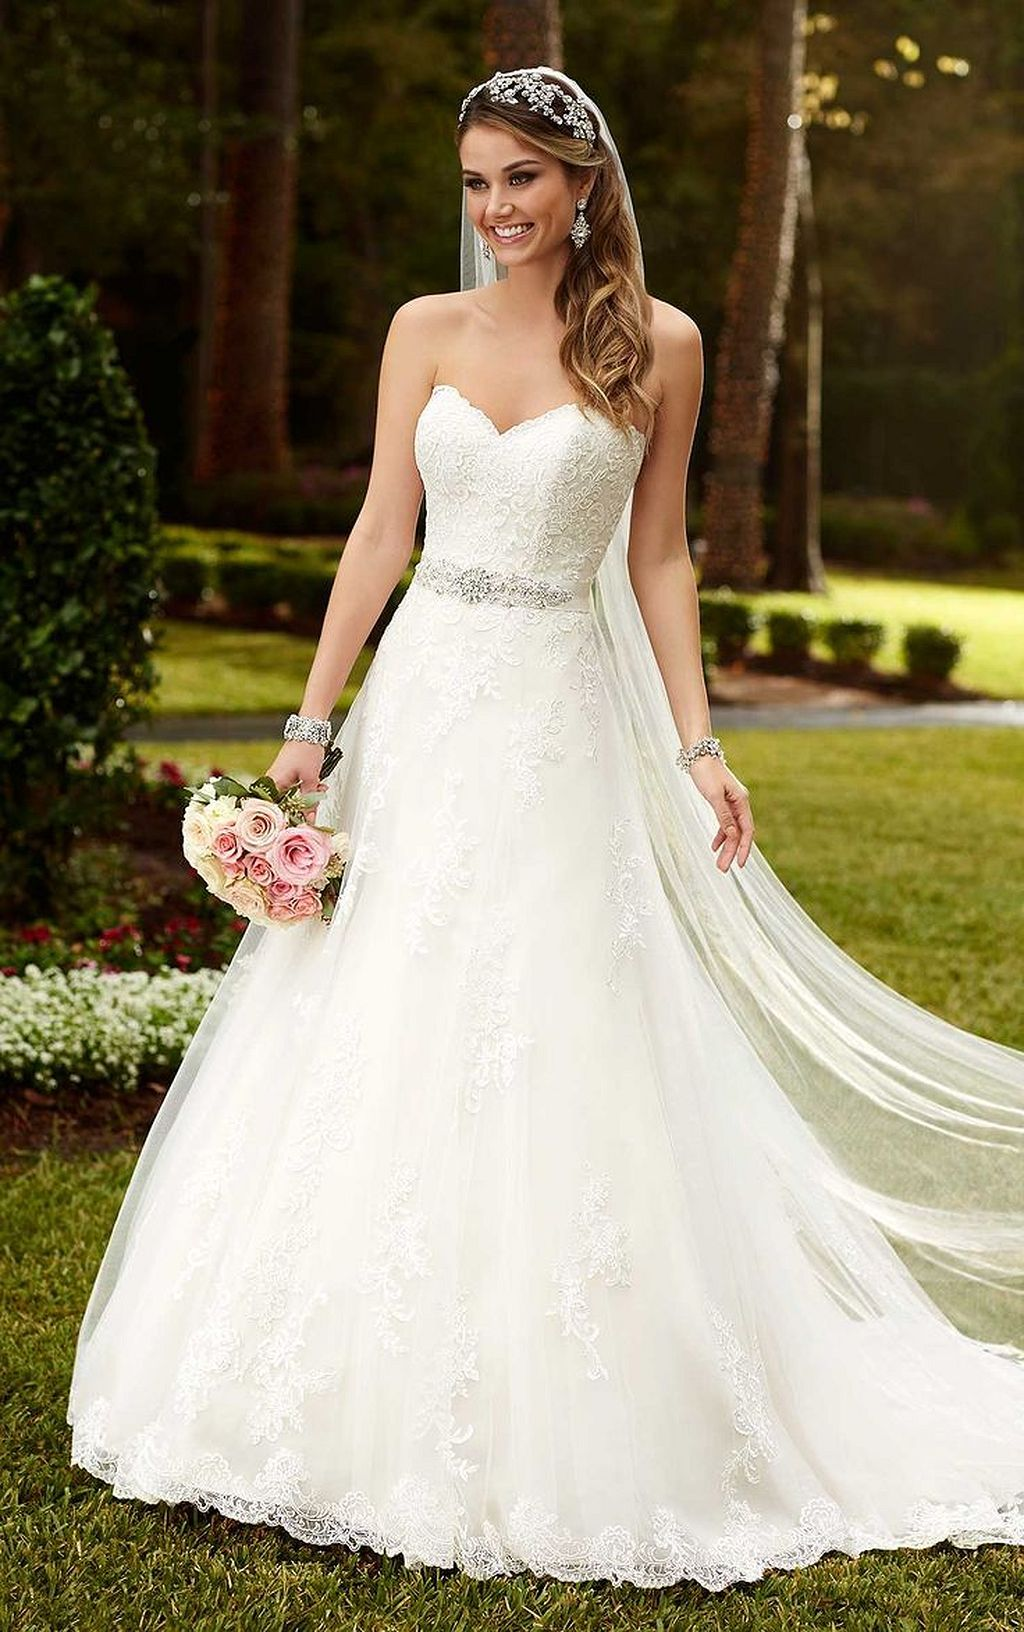 30+ Sweetheart Princess Wedding Dress Ideas | Princess wedding ...